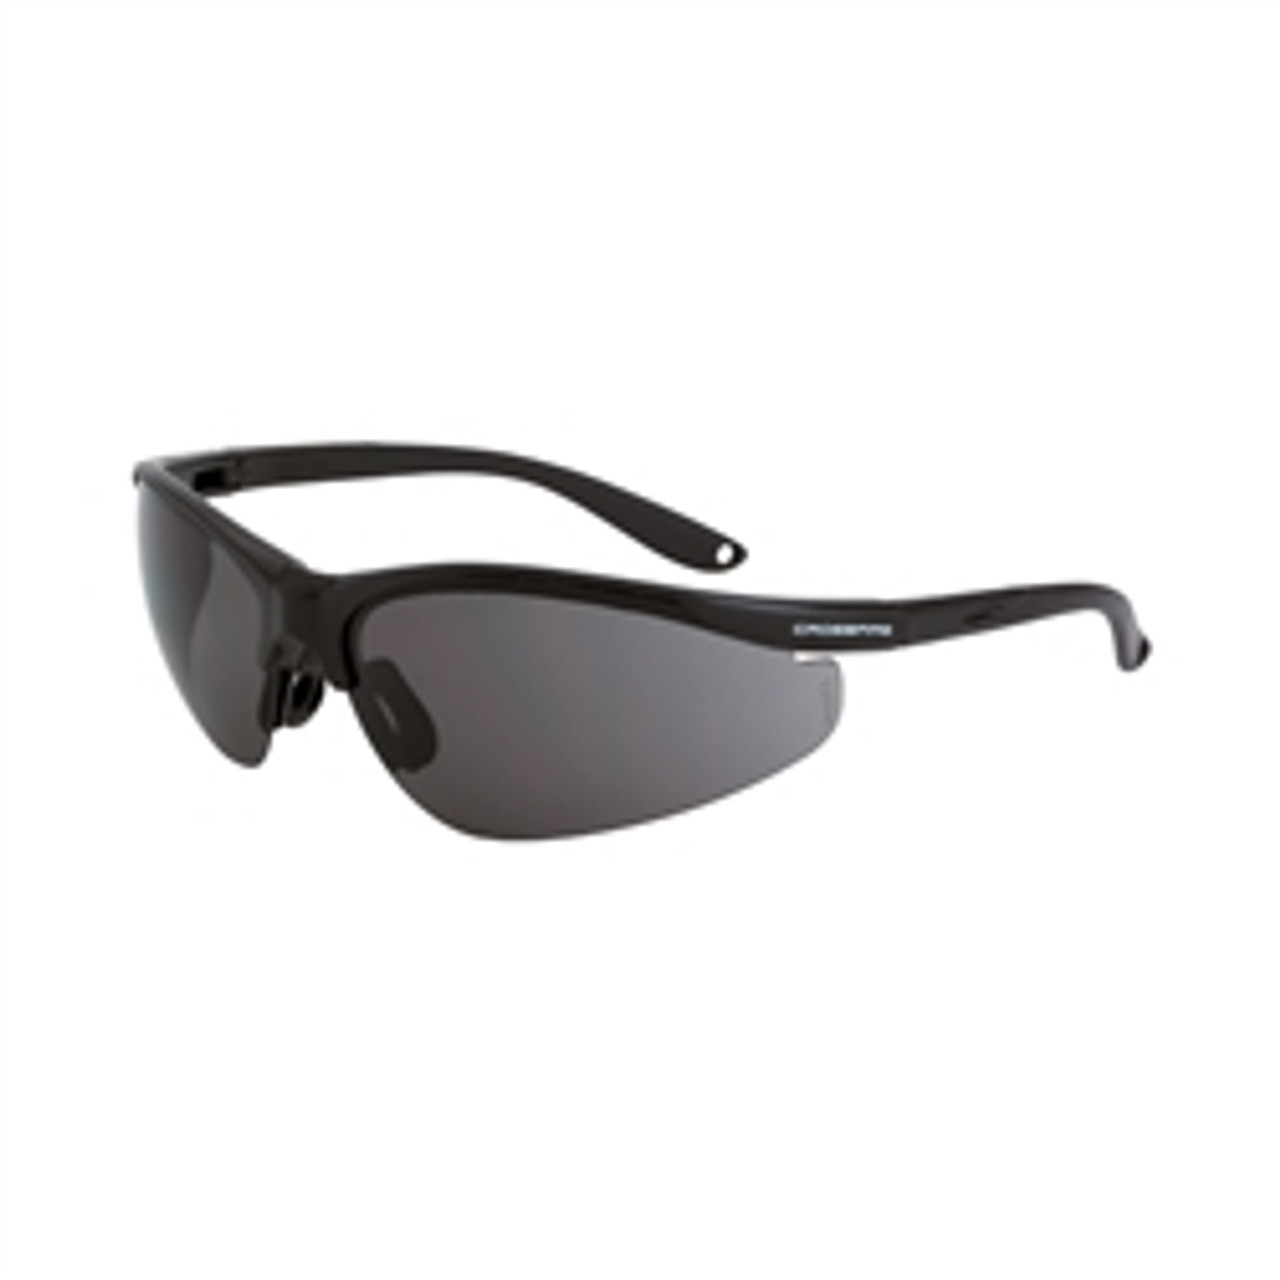 Tinted Lens Crossfire Brigade Performance Safety Eyewear - Radians 1731